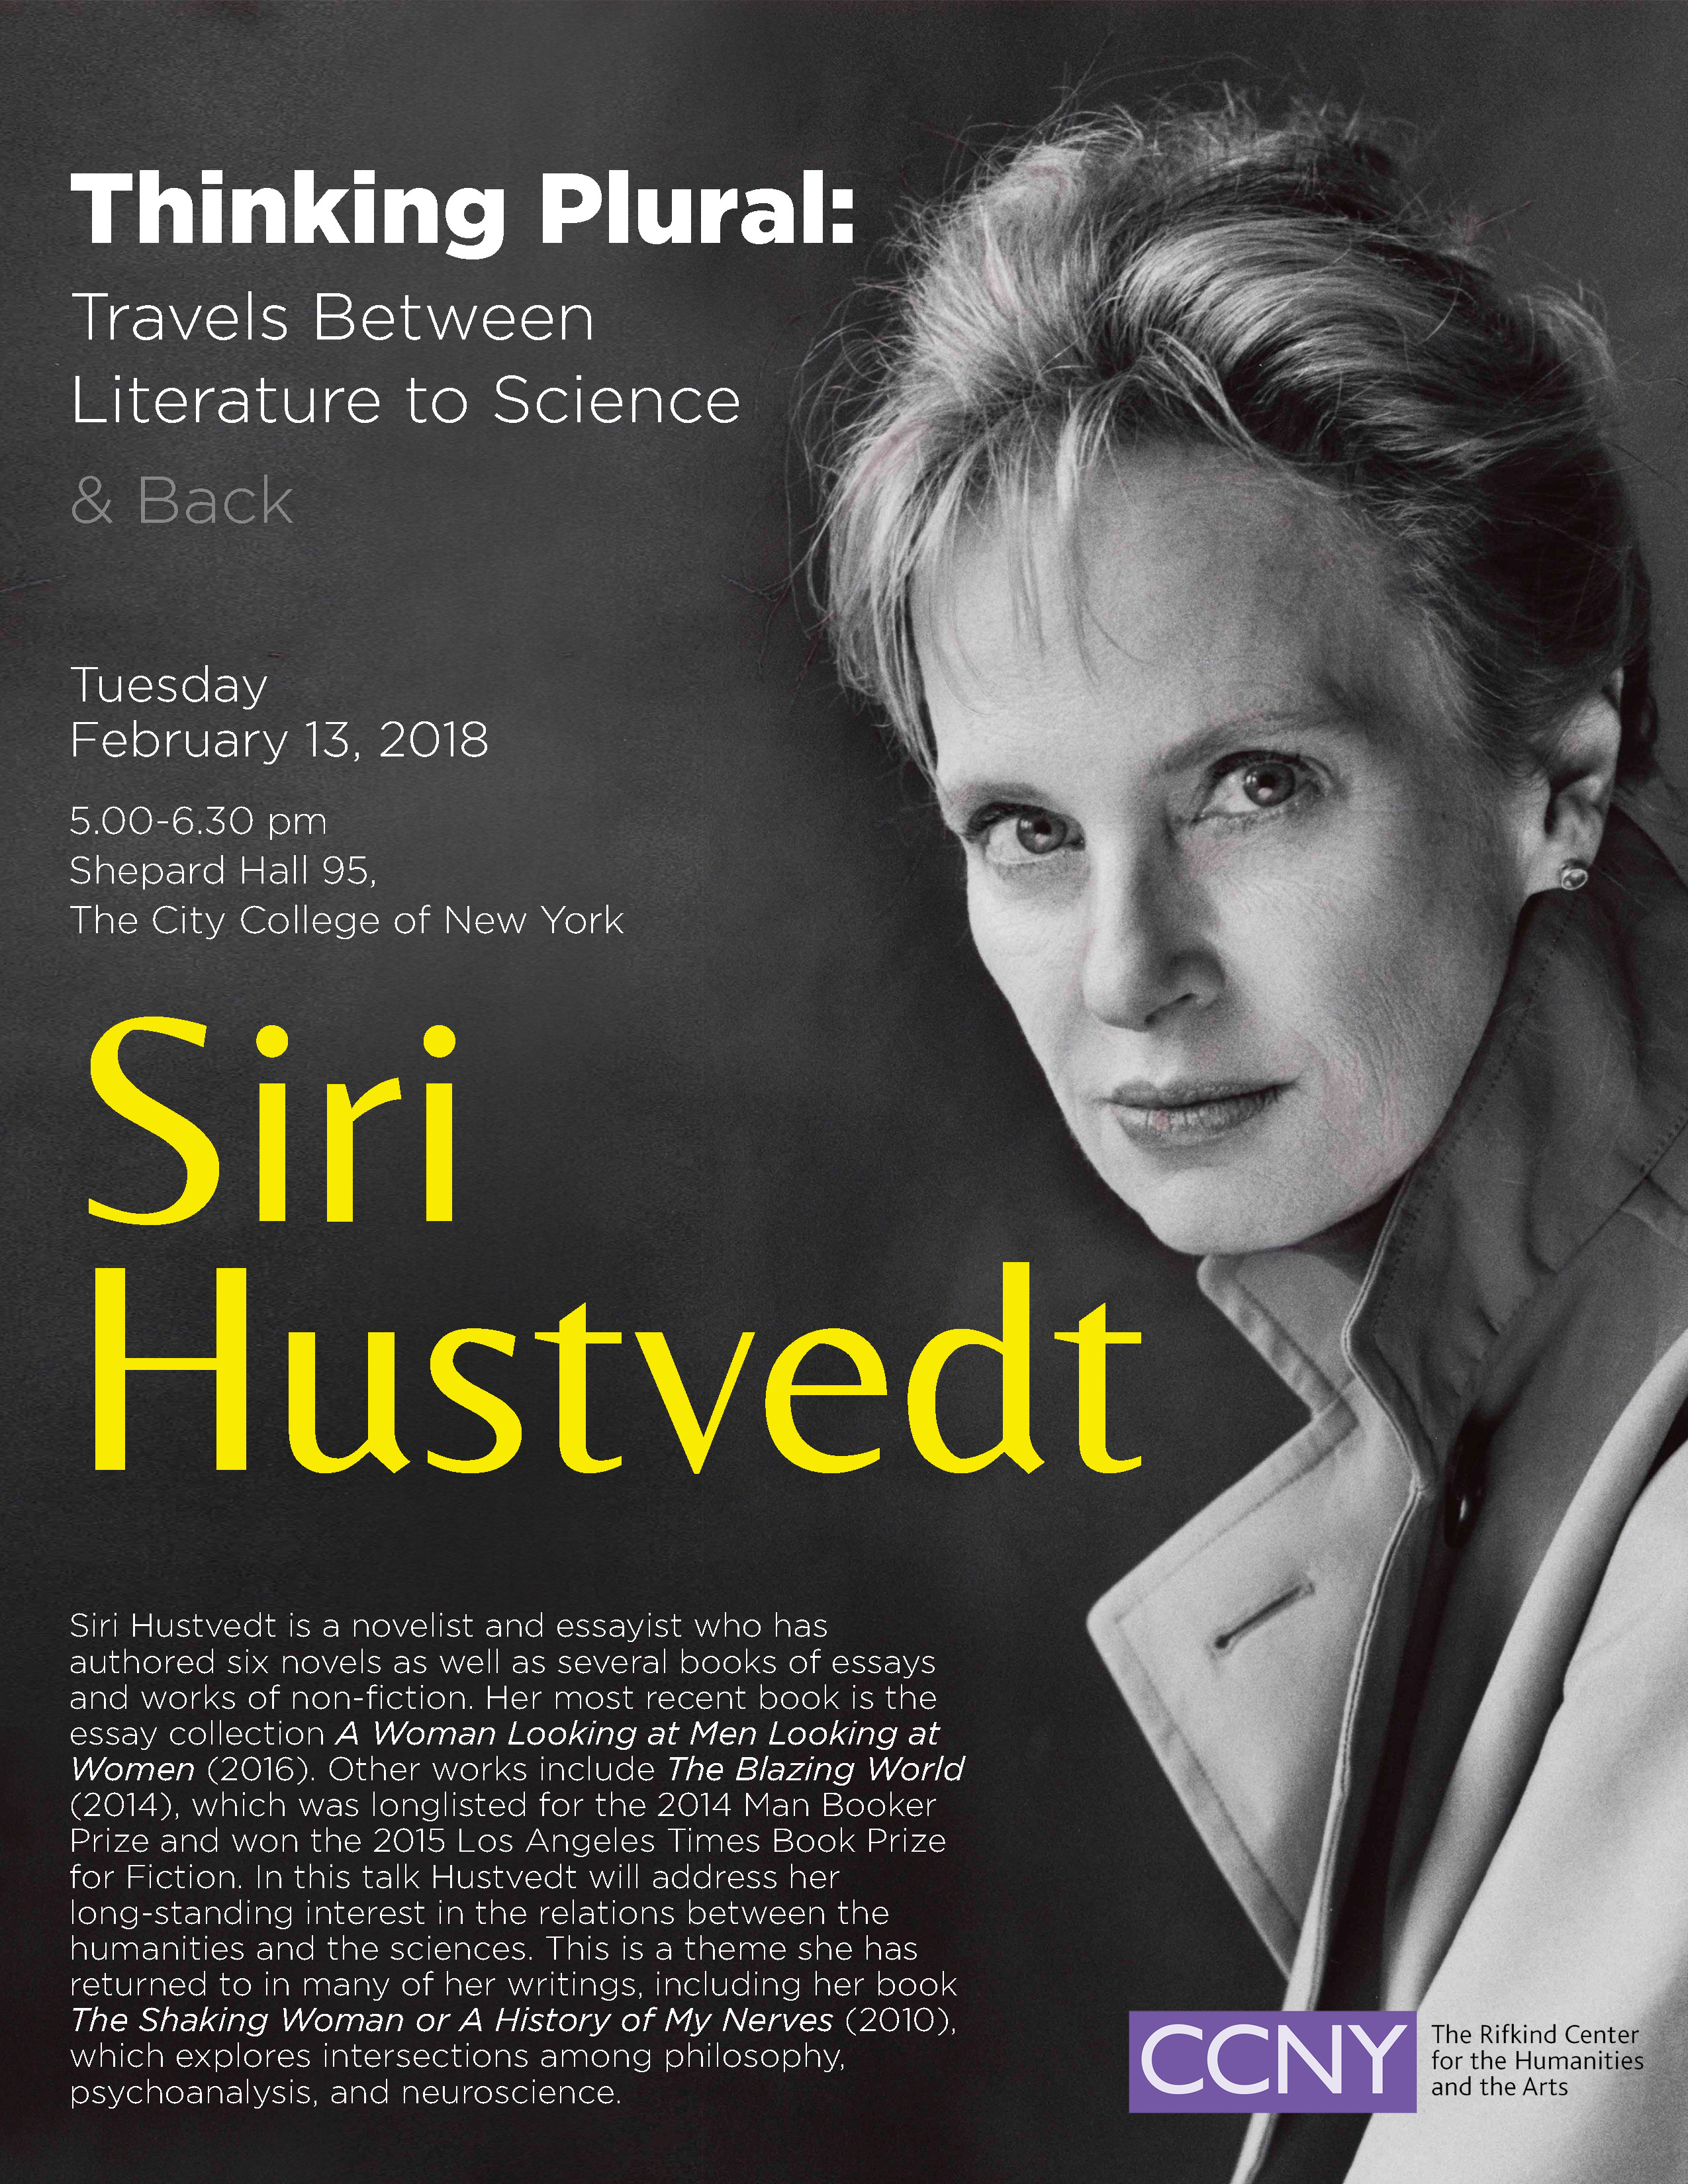 Promotion for Thinking Plural, a talk by Siri Hustvedt, Feb 13, 5-6:30 PM, SH-95